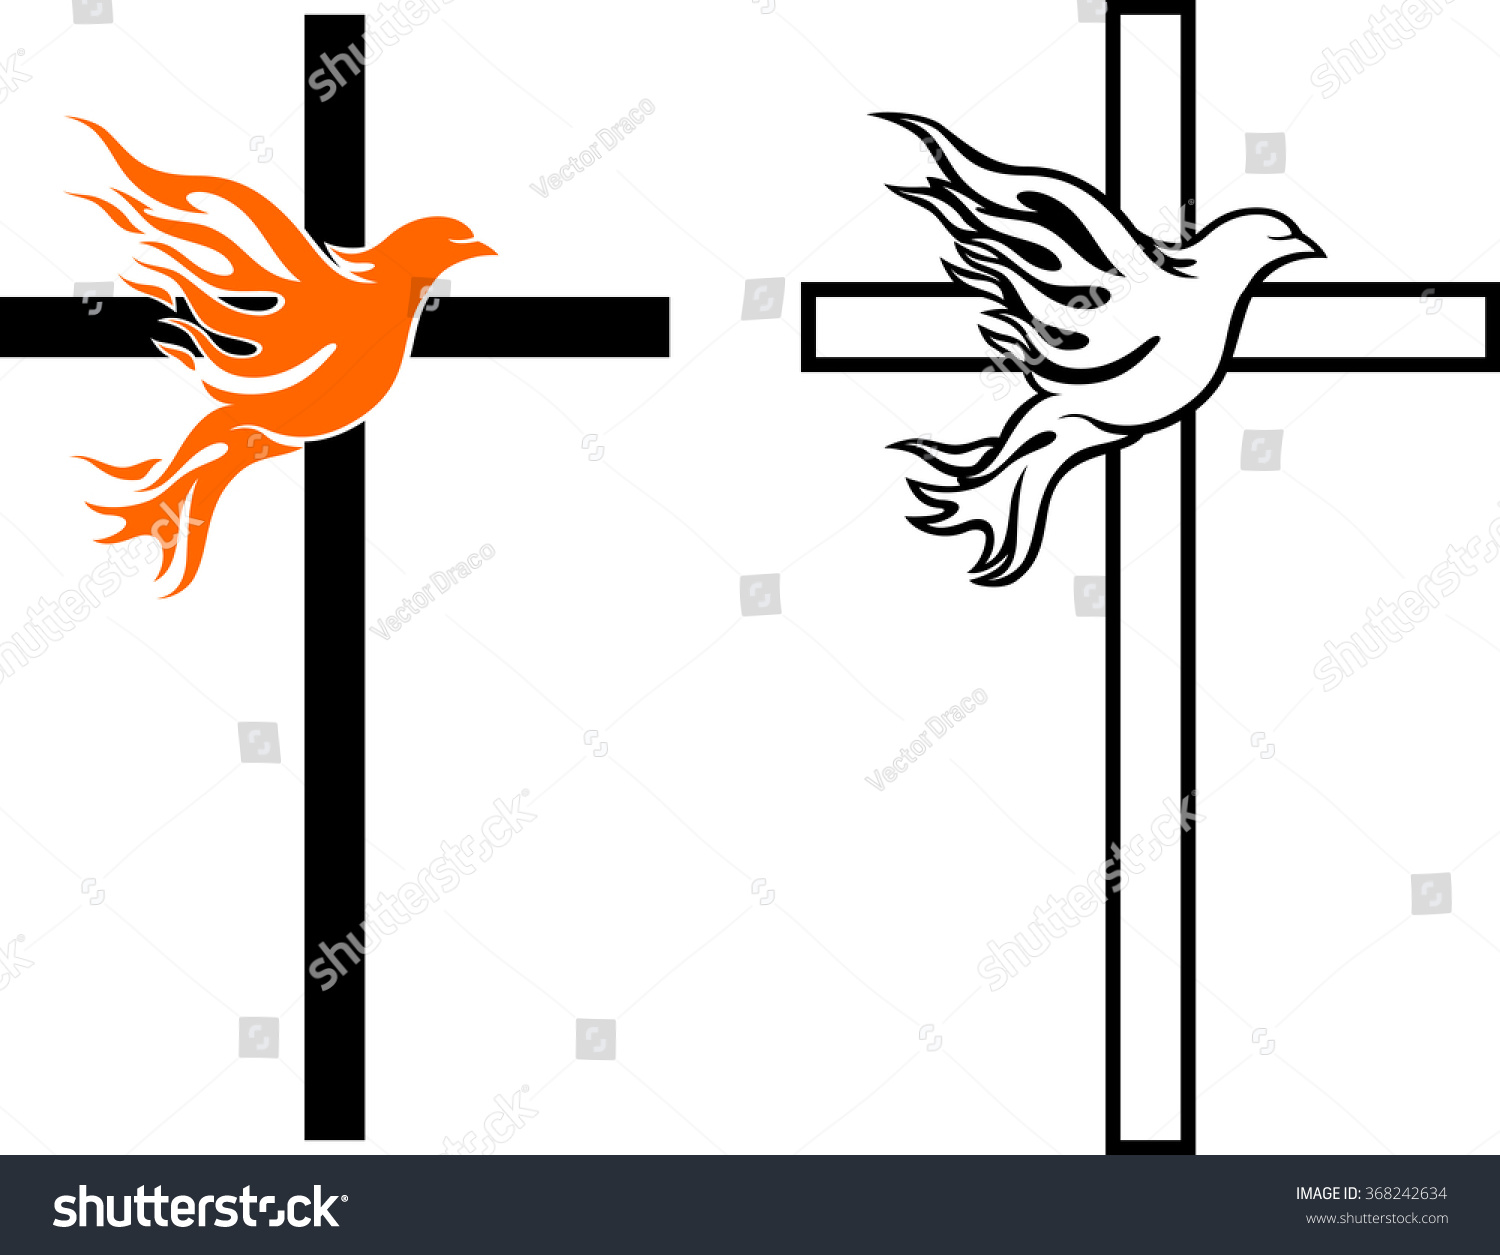 Flame Dove Cross Stock Vector 368242634 - Shutterstock